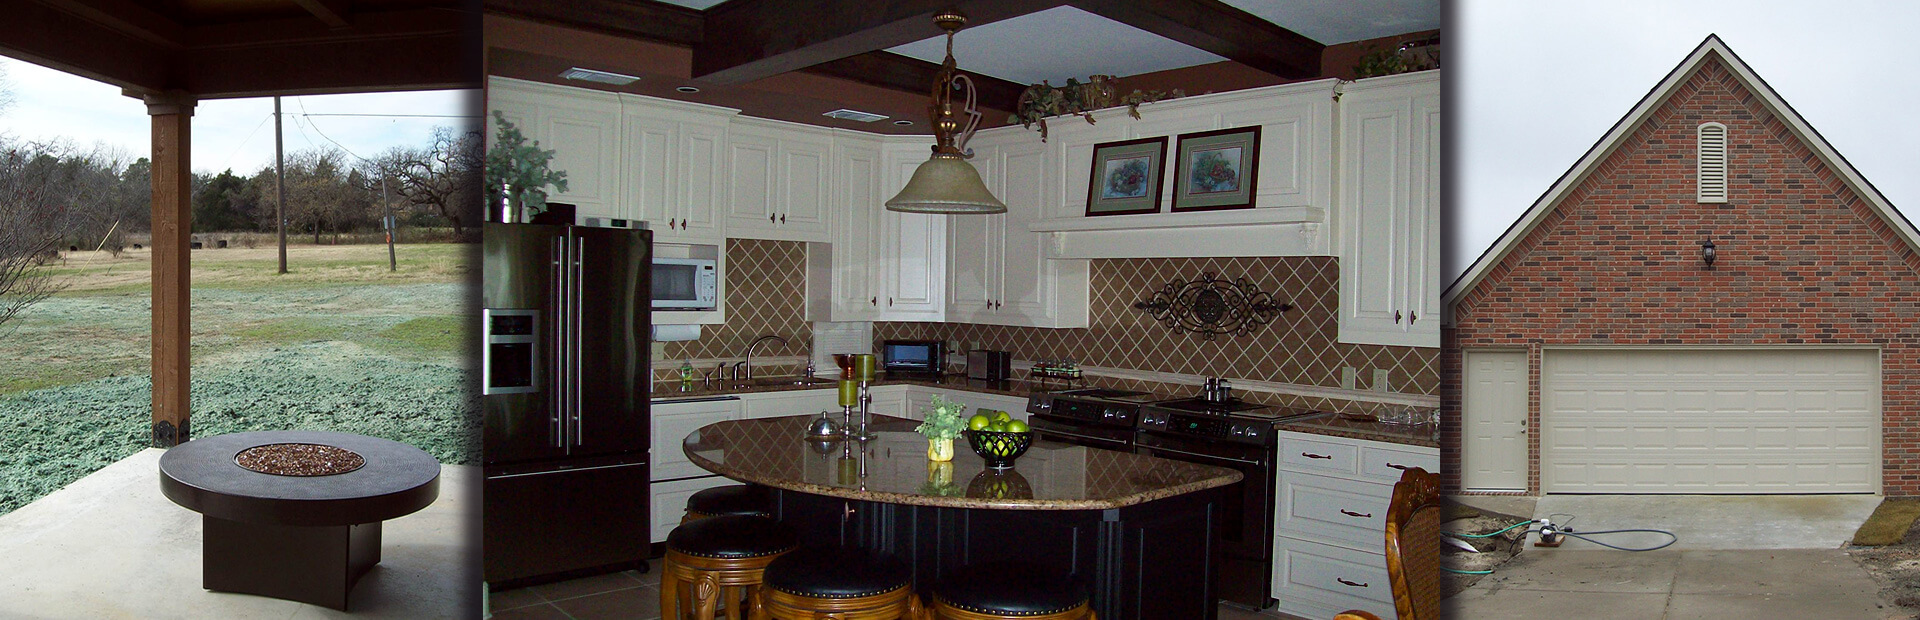 Kitchen Remodeling - Denton, Corinth, Flower Mound, Lewisville